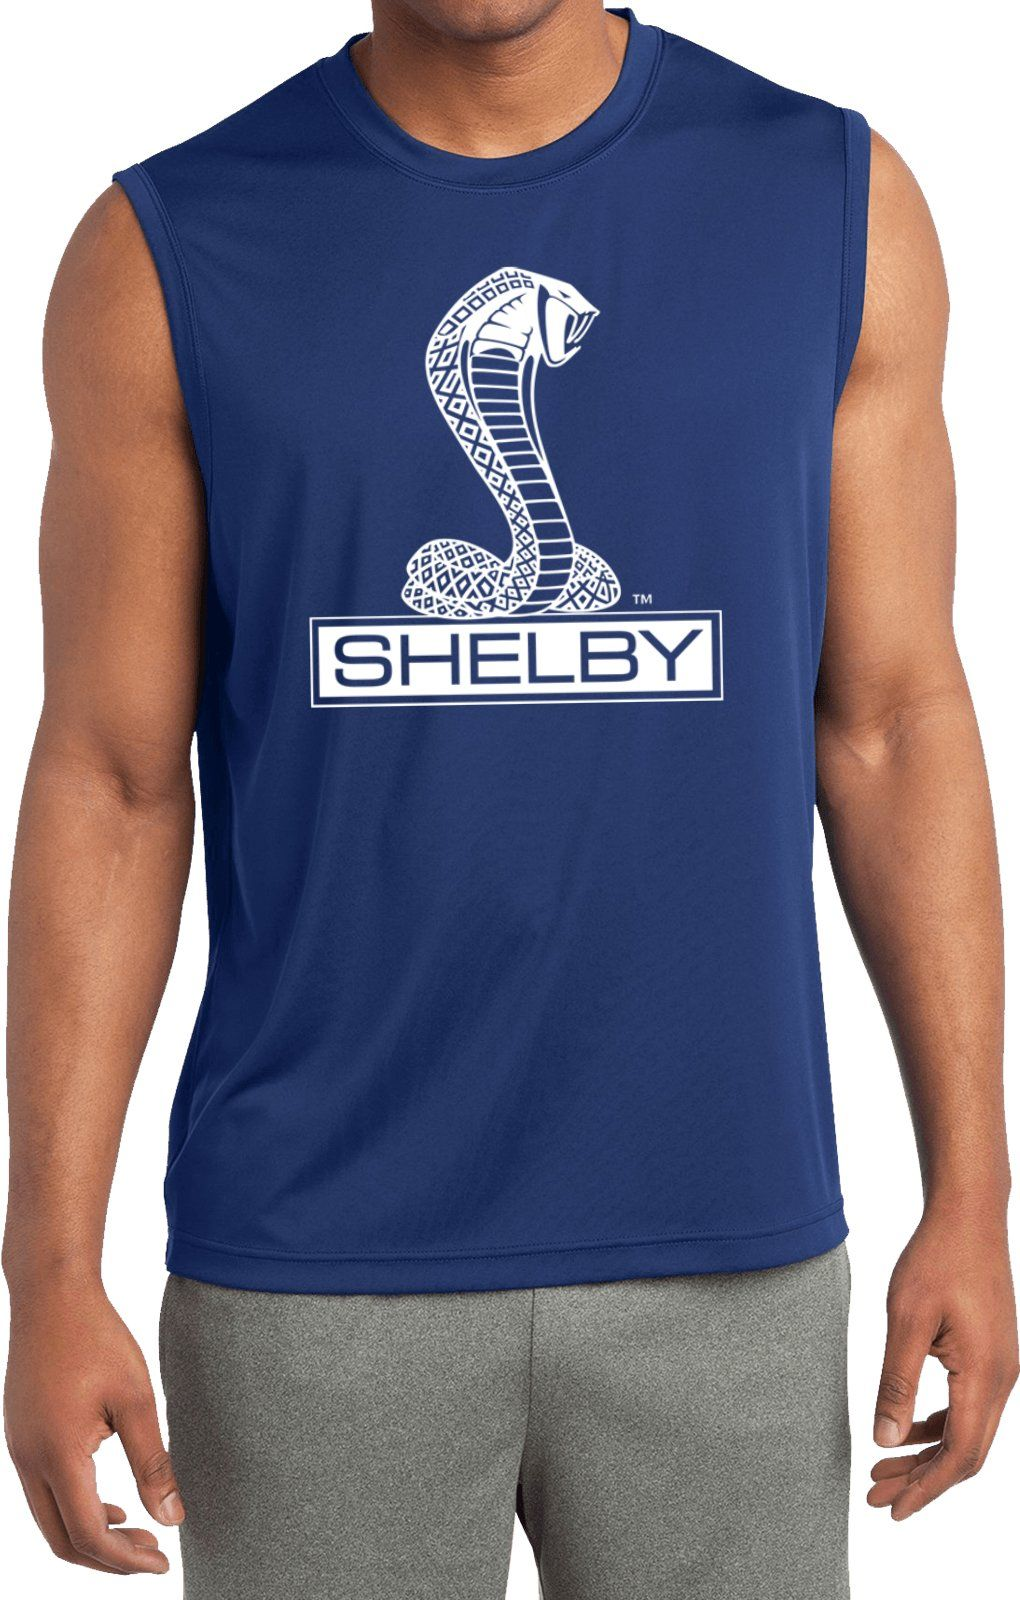 Mustang 50 Years Shelby Snake Men/'s Tank Top High Quality Brand New Shirts